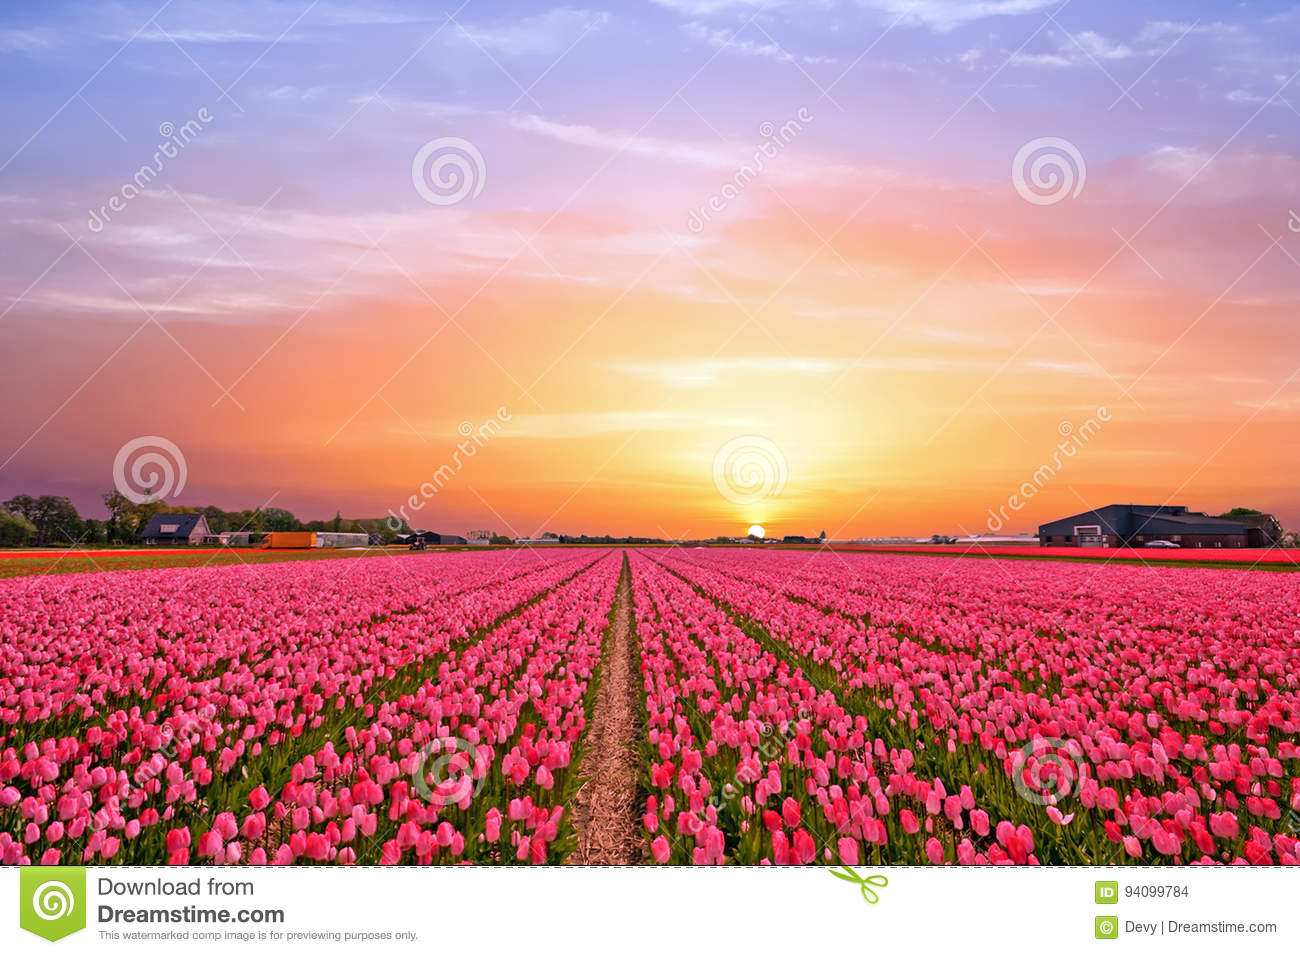 Tulip fields in the countryside from the Netherlands in spring